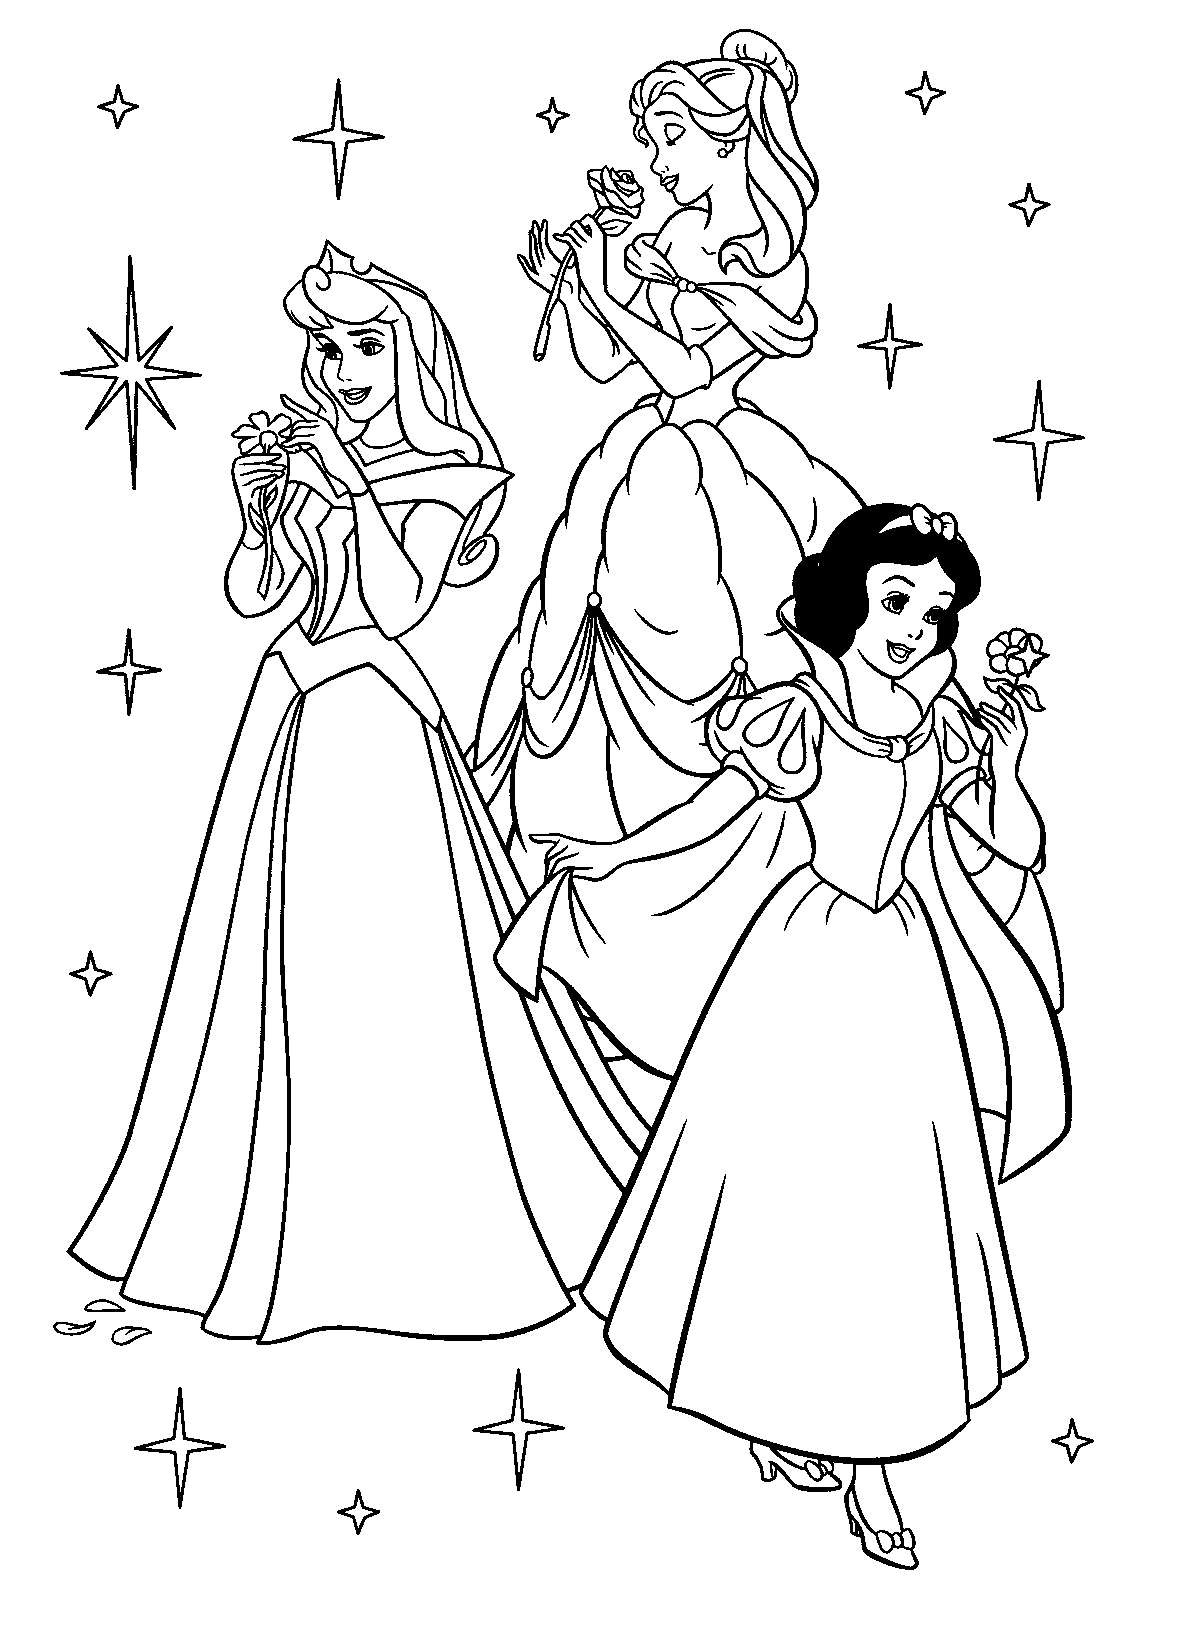 Free Printable Disney Princess Coloring Pages For Kids Print Princess Coloring Pages